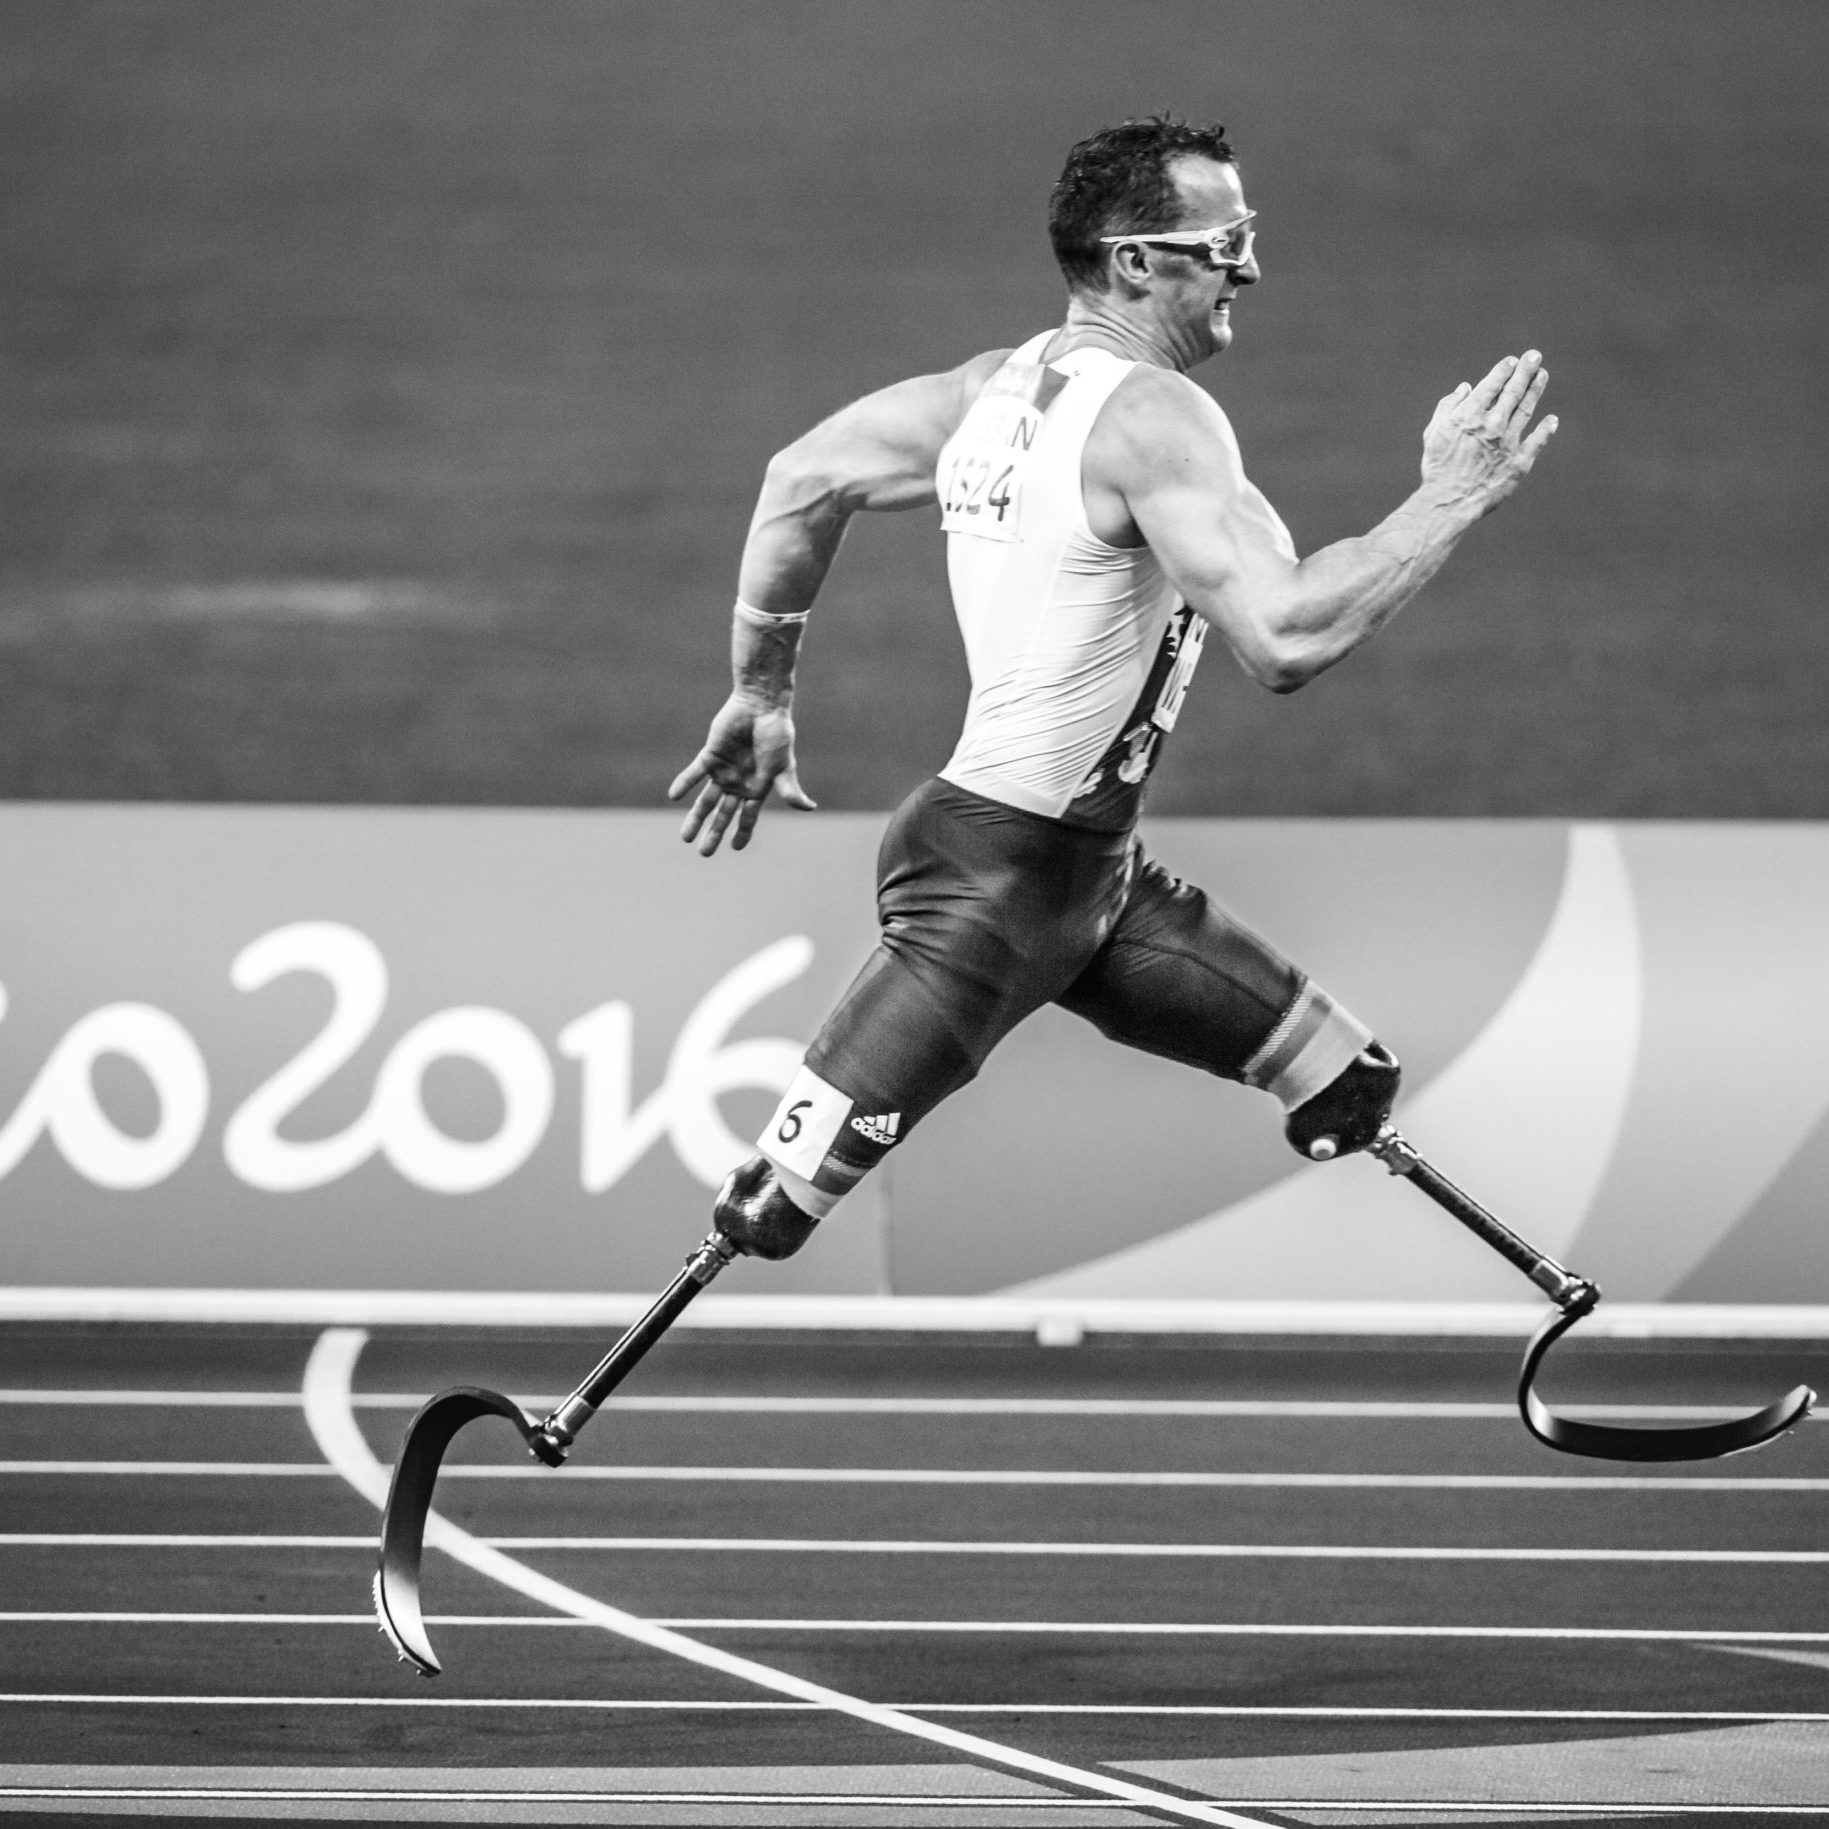 Canva - Man with Leg Prosthesis Running at Rio 2016 Olympics